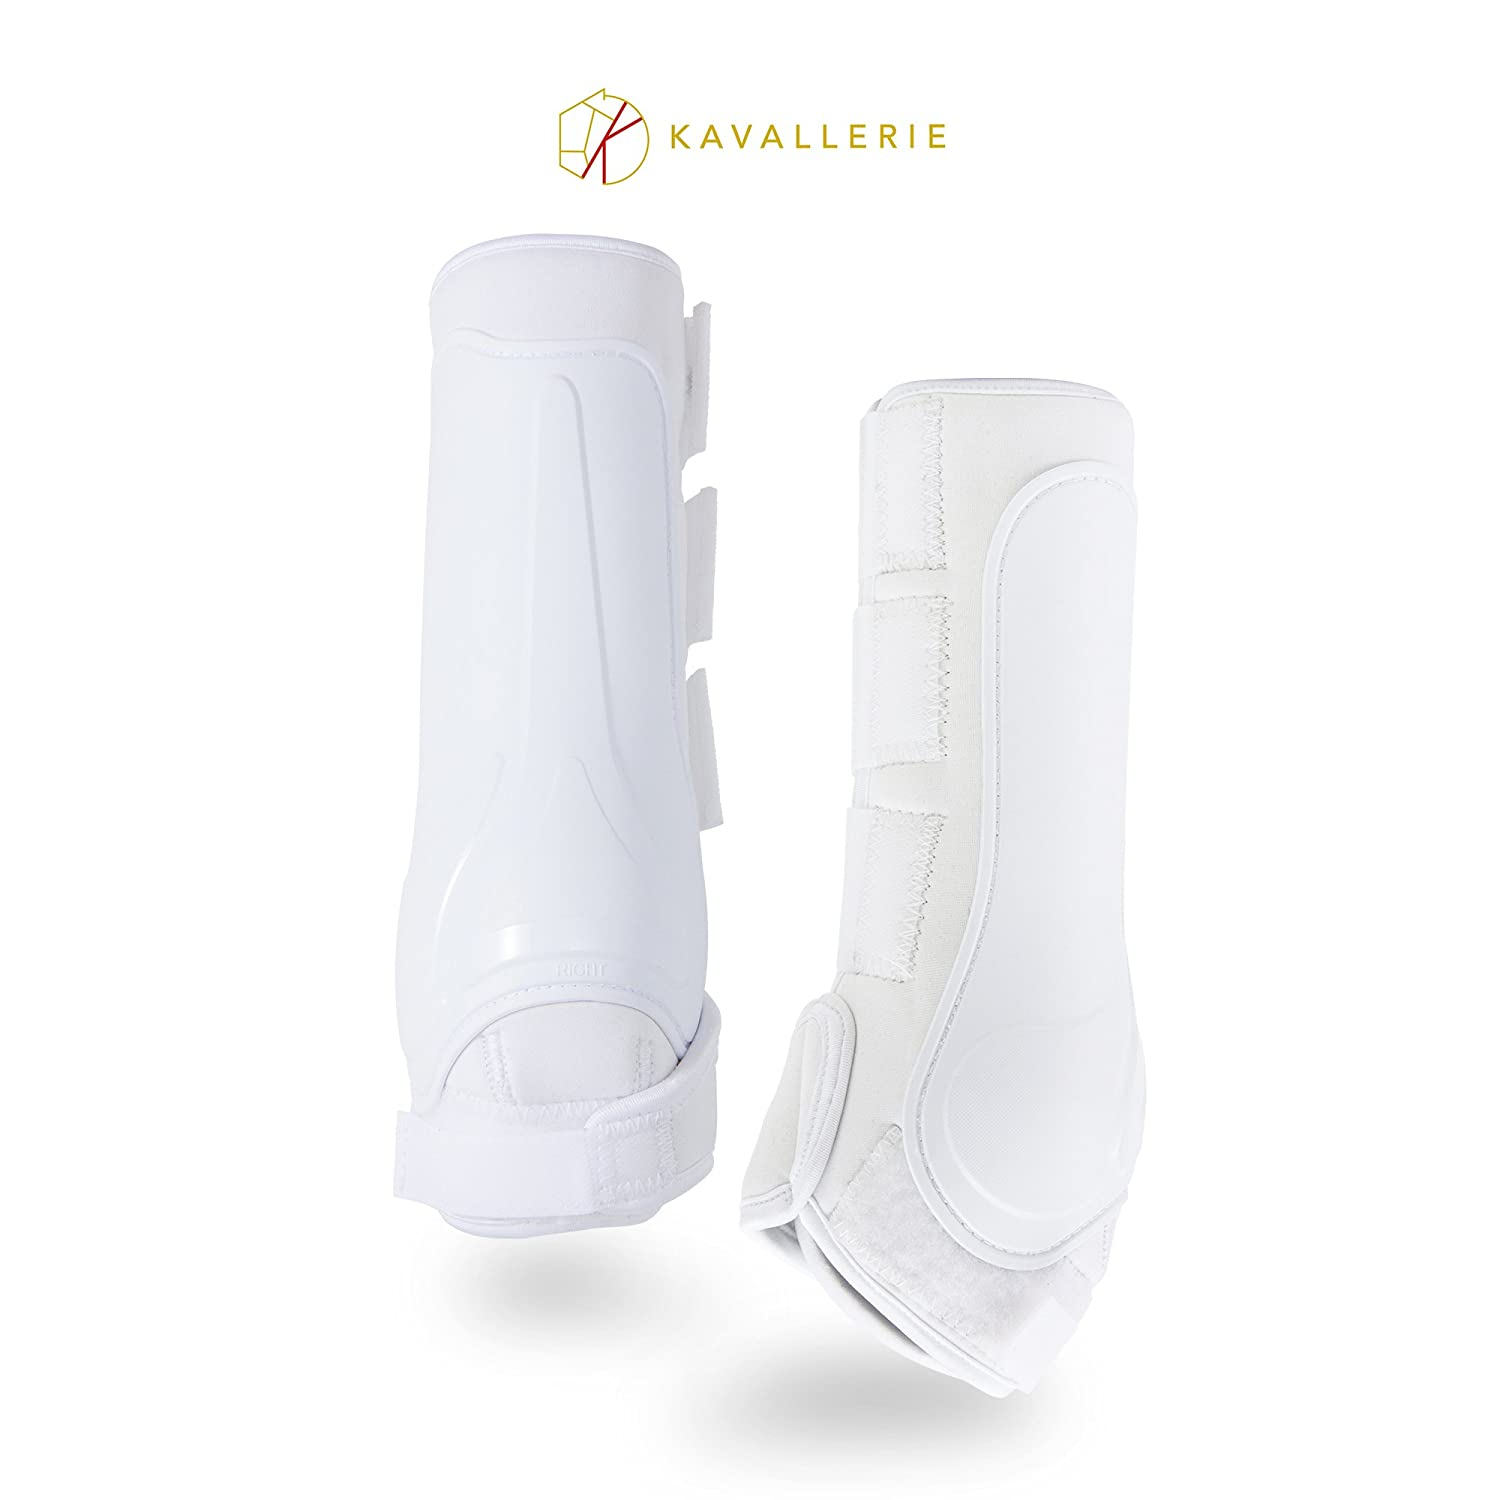 Kavallerie Pro K Support Boots For Horses Maximum Protection Circuit Scribe Conductive Ink Basic Kit Electroninks Cskitbasic Rehabilitation From Injuries Includes Silver